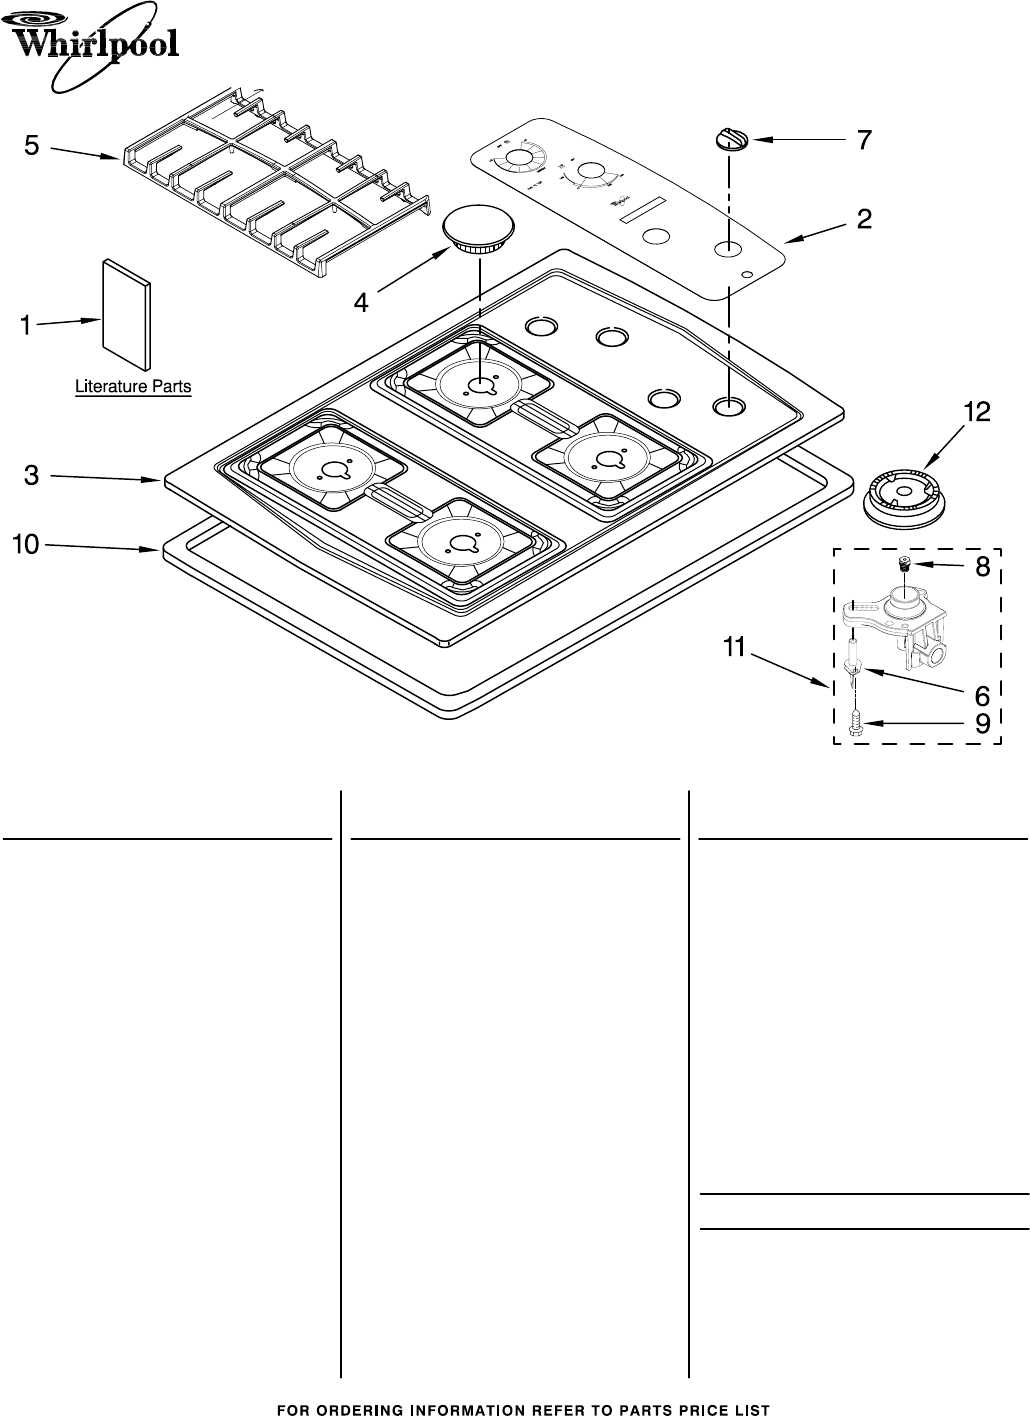 whirlpool cooktop scs3617rq03 user guide